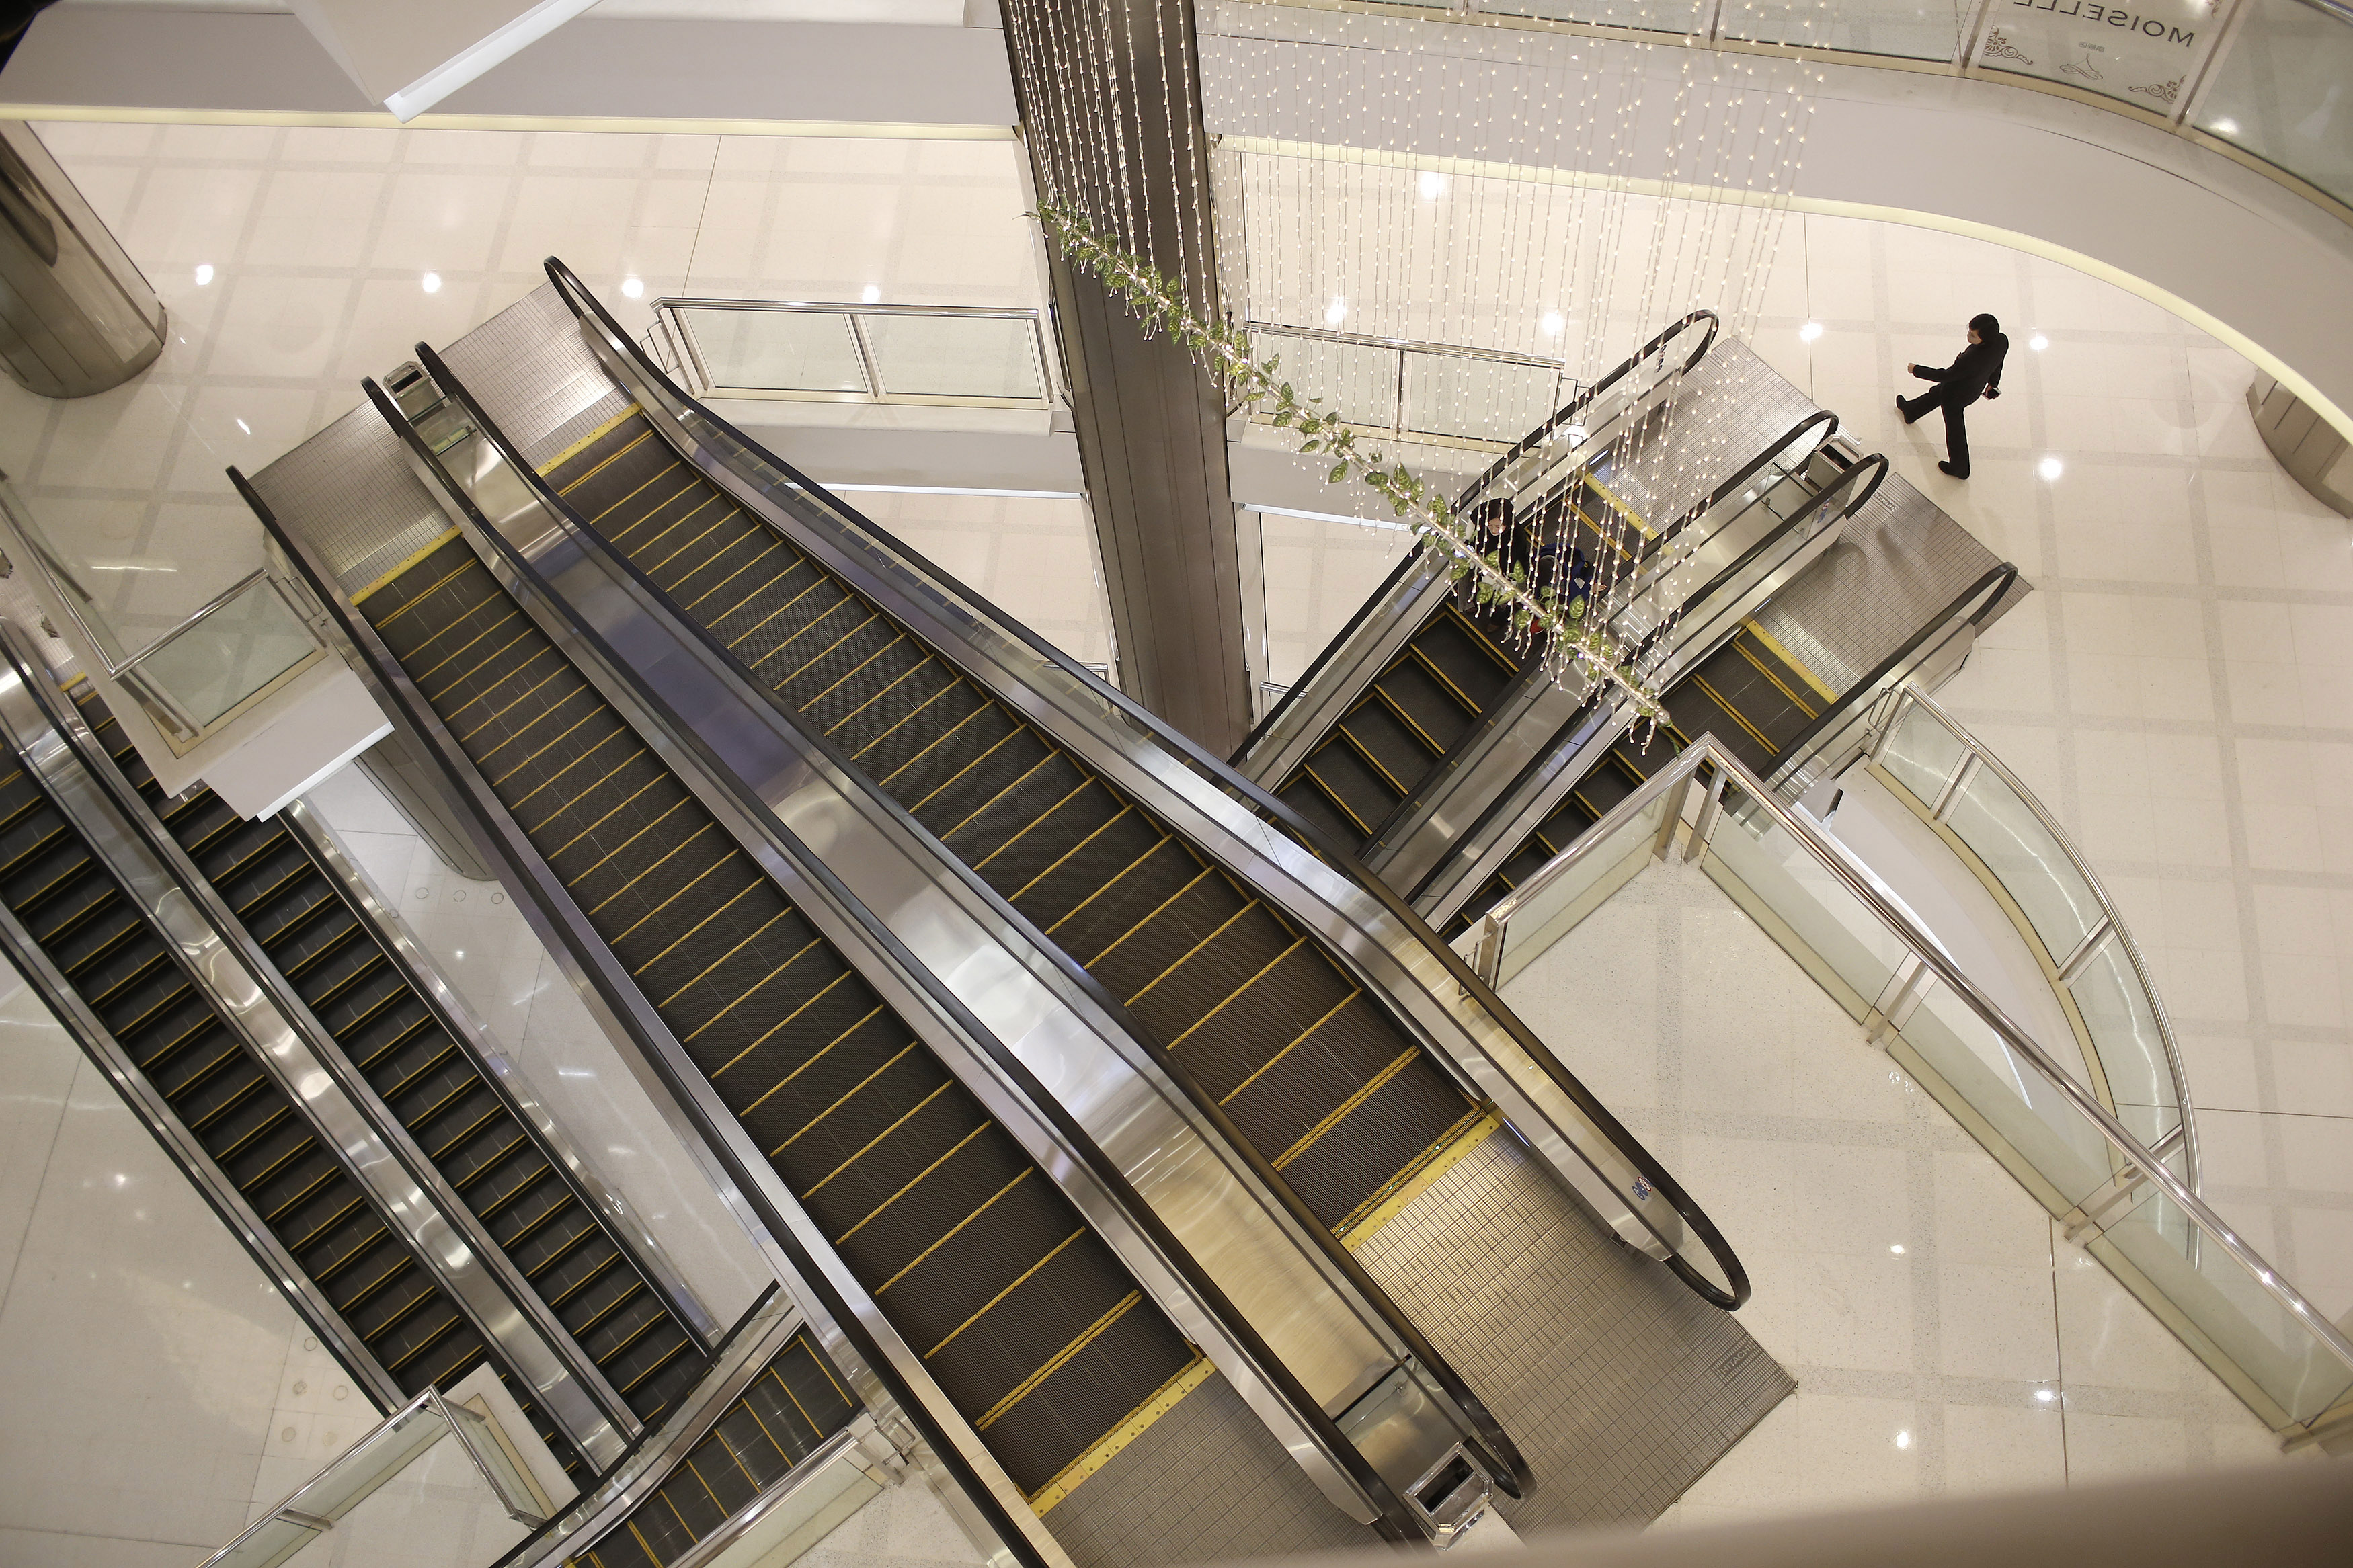 A woman walks next to escalators at a department store in Shanghai, March 8, 2015.